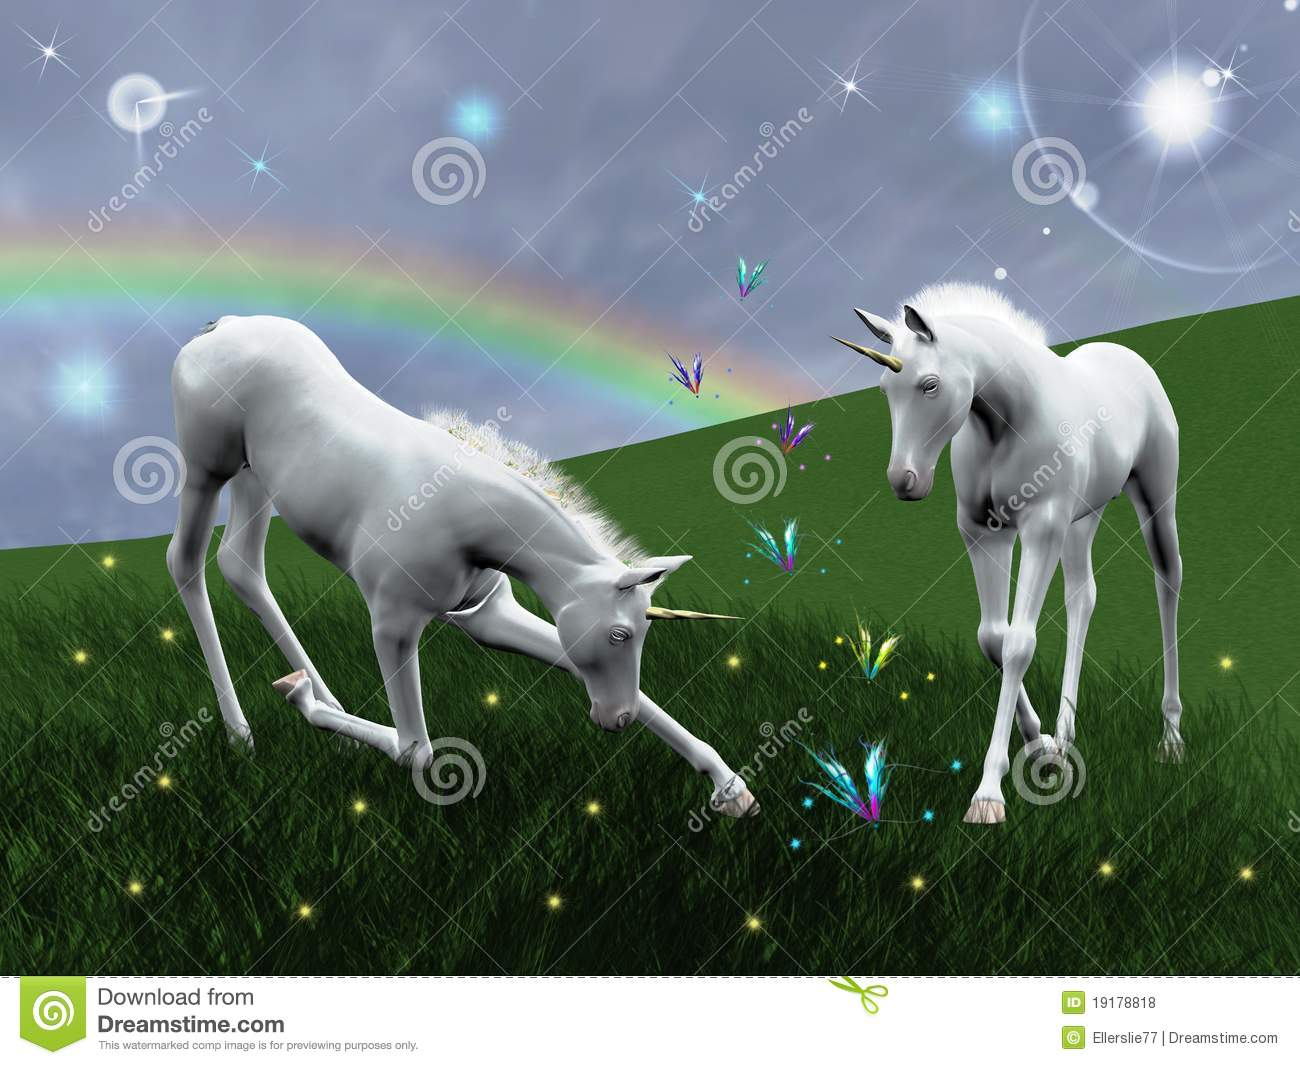 Stock Fotos E Imágenes: Unicorns Royalty Free Stock Photos